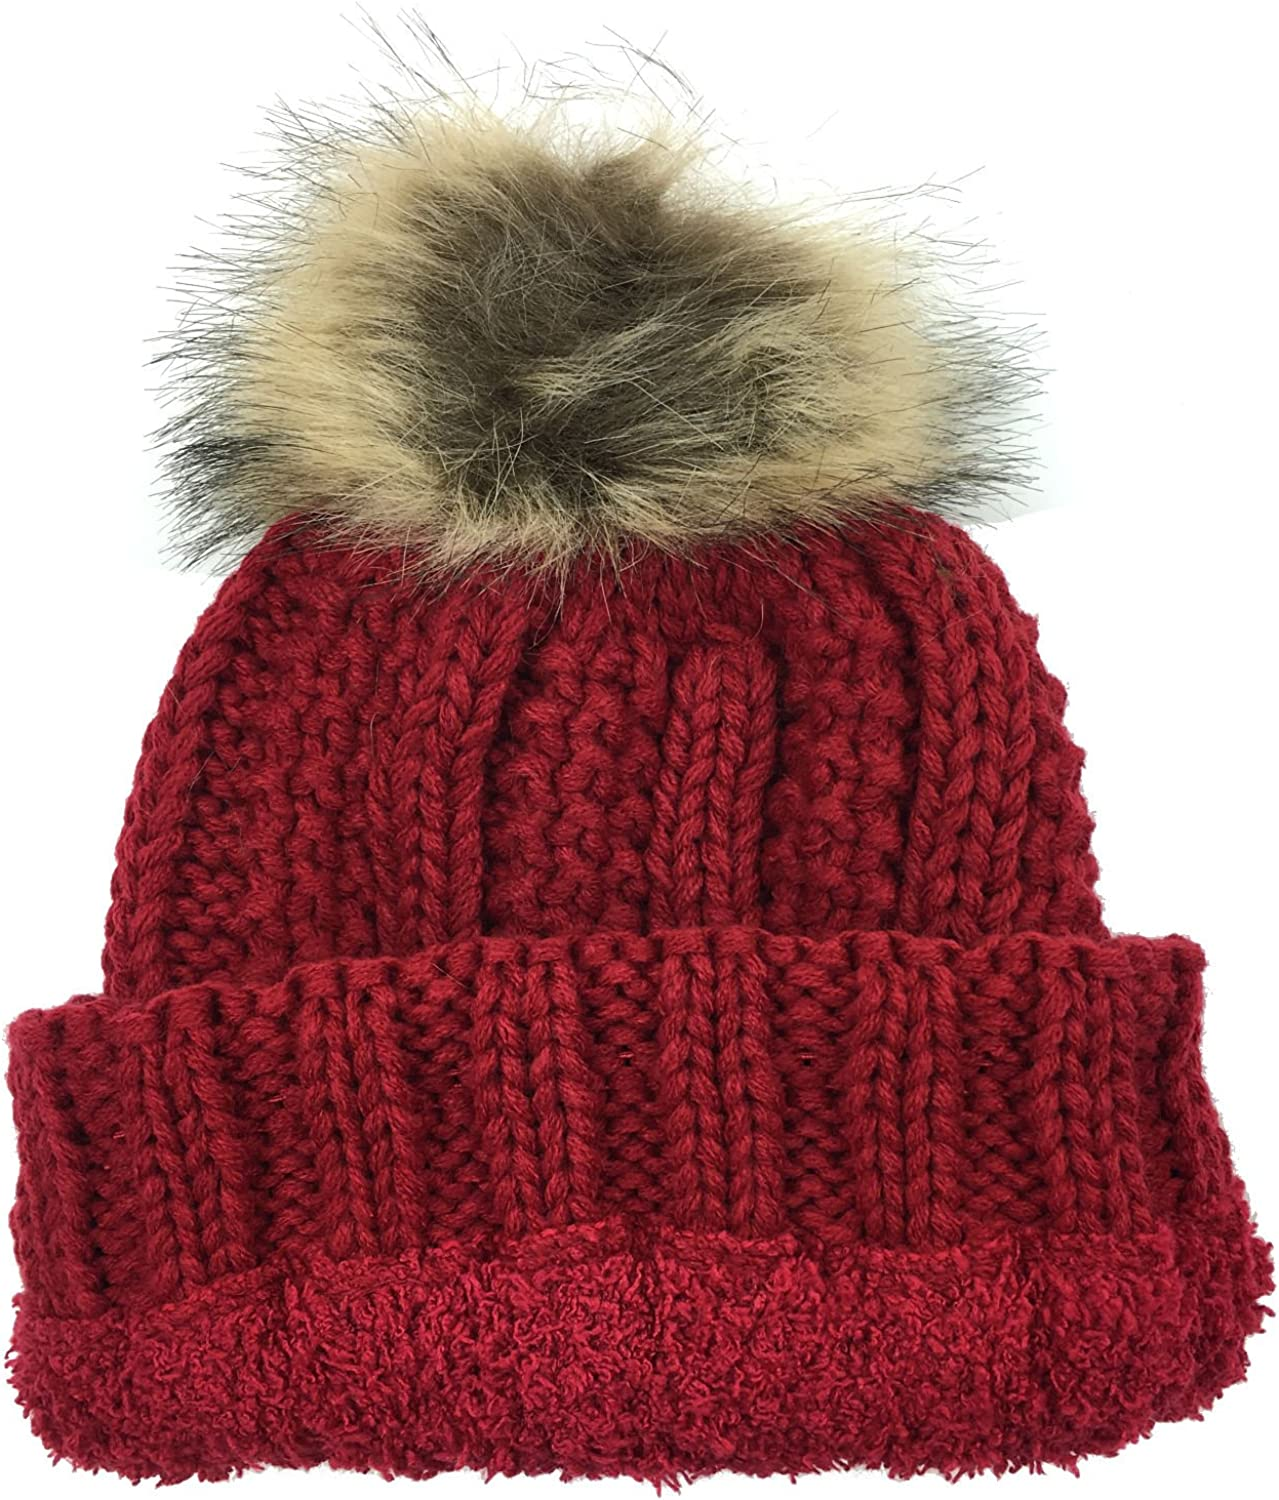 Plum Feathers Thick Faux Fur Pom Pom Fleece Lined Skull Cap Cuff Beanie for Kids Ages 2-7